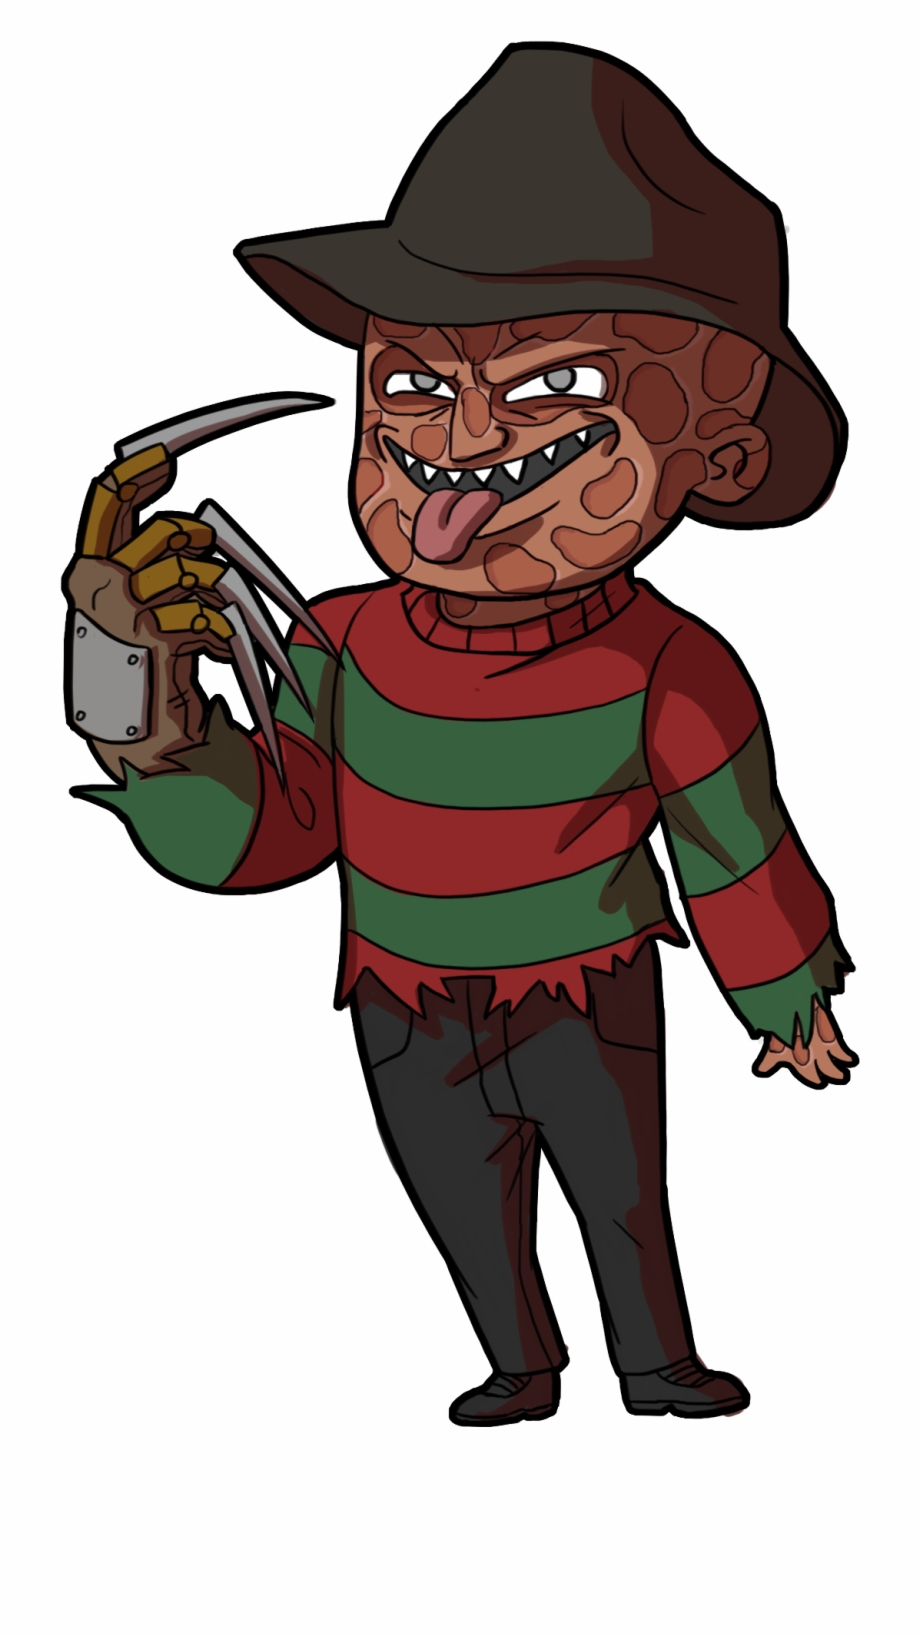 Freddy kruger clipart png royalty free download dead By Daylight #jason Voorhees #freddy Krueger #michael - Cartoon ... png royalty free download